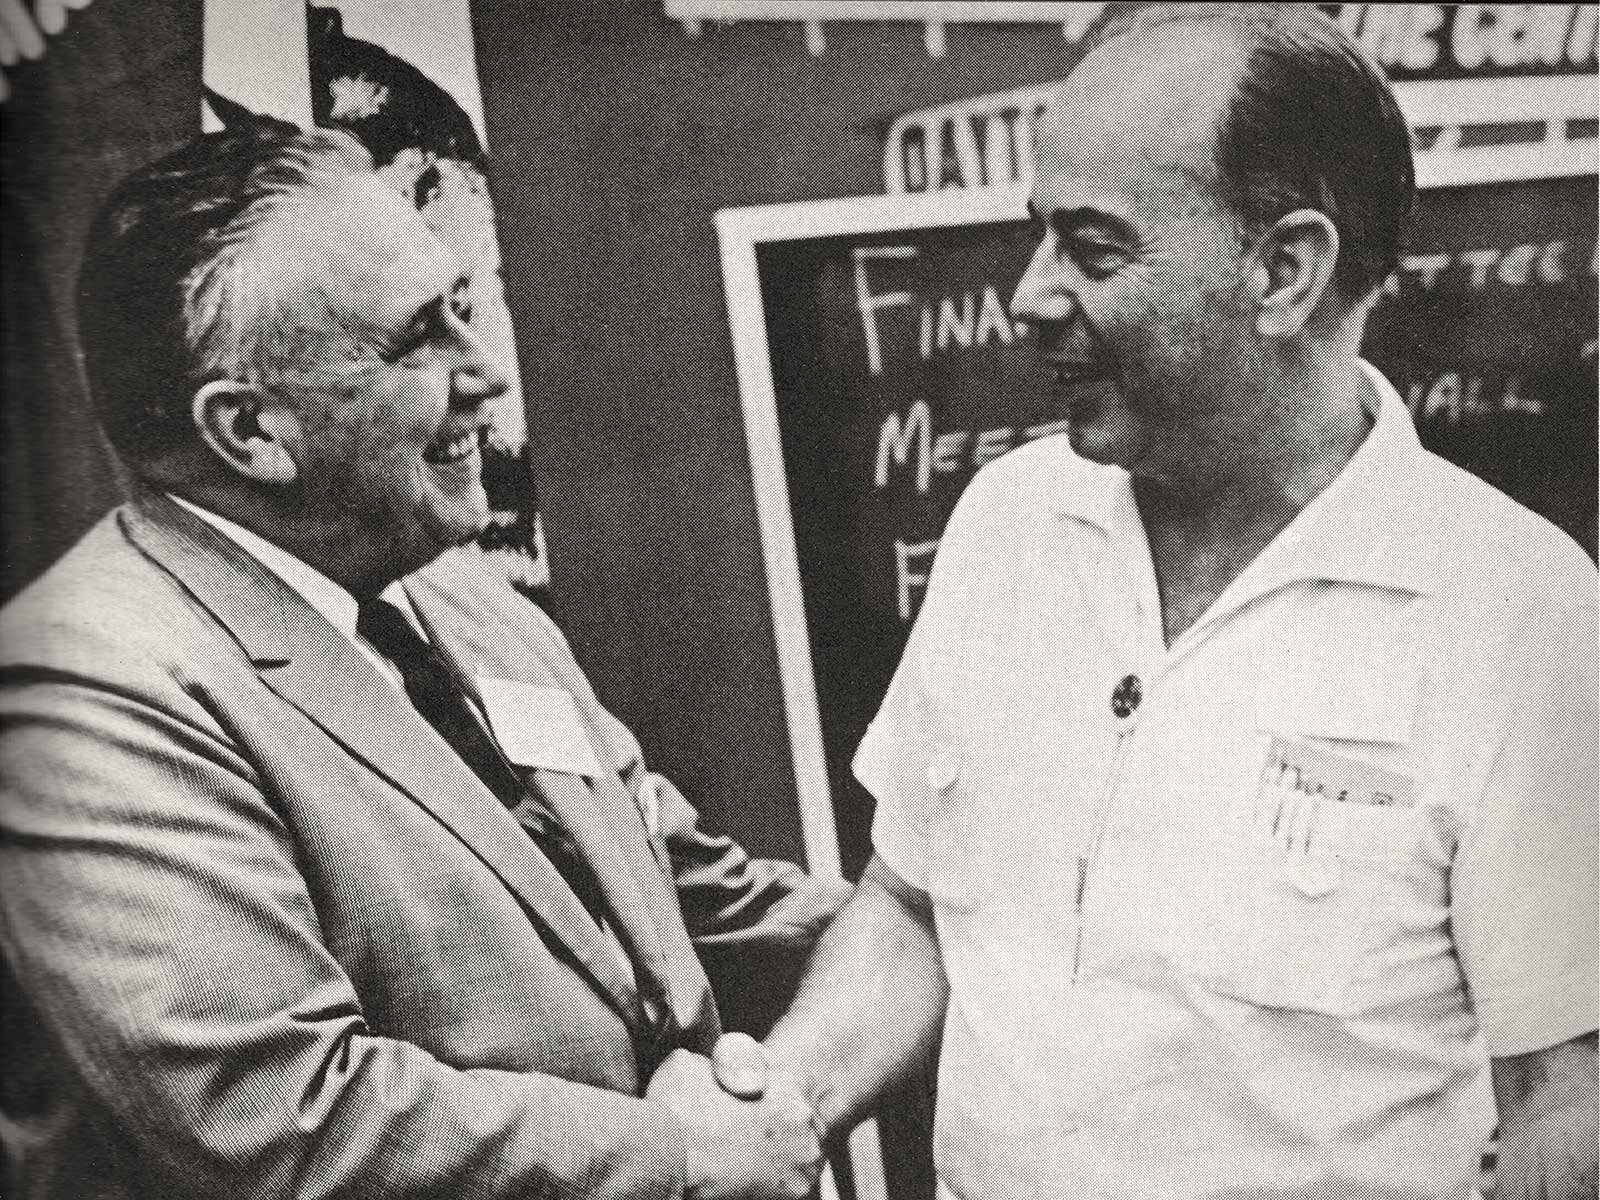 Former FFFC President Al Albertoni (right) shakes hands with IAFF President William Buck after his election as IAFF Secretary-Treasurer. Albertoni and Al Whitehead are the only two Californians to serve in the position.